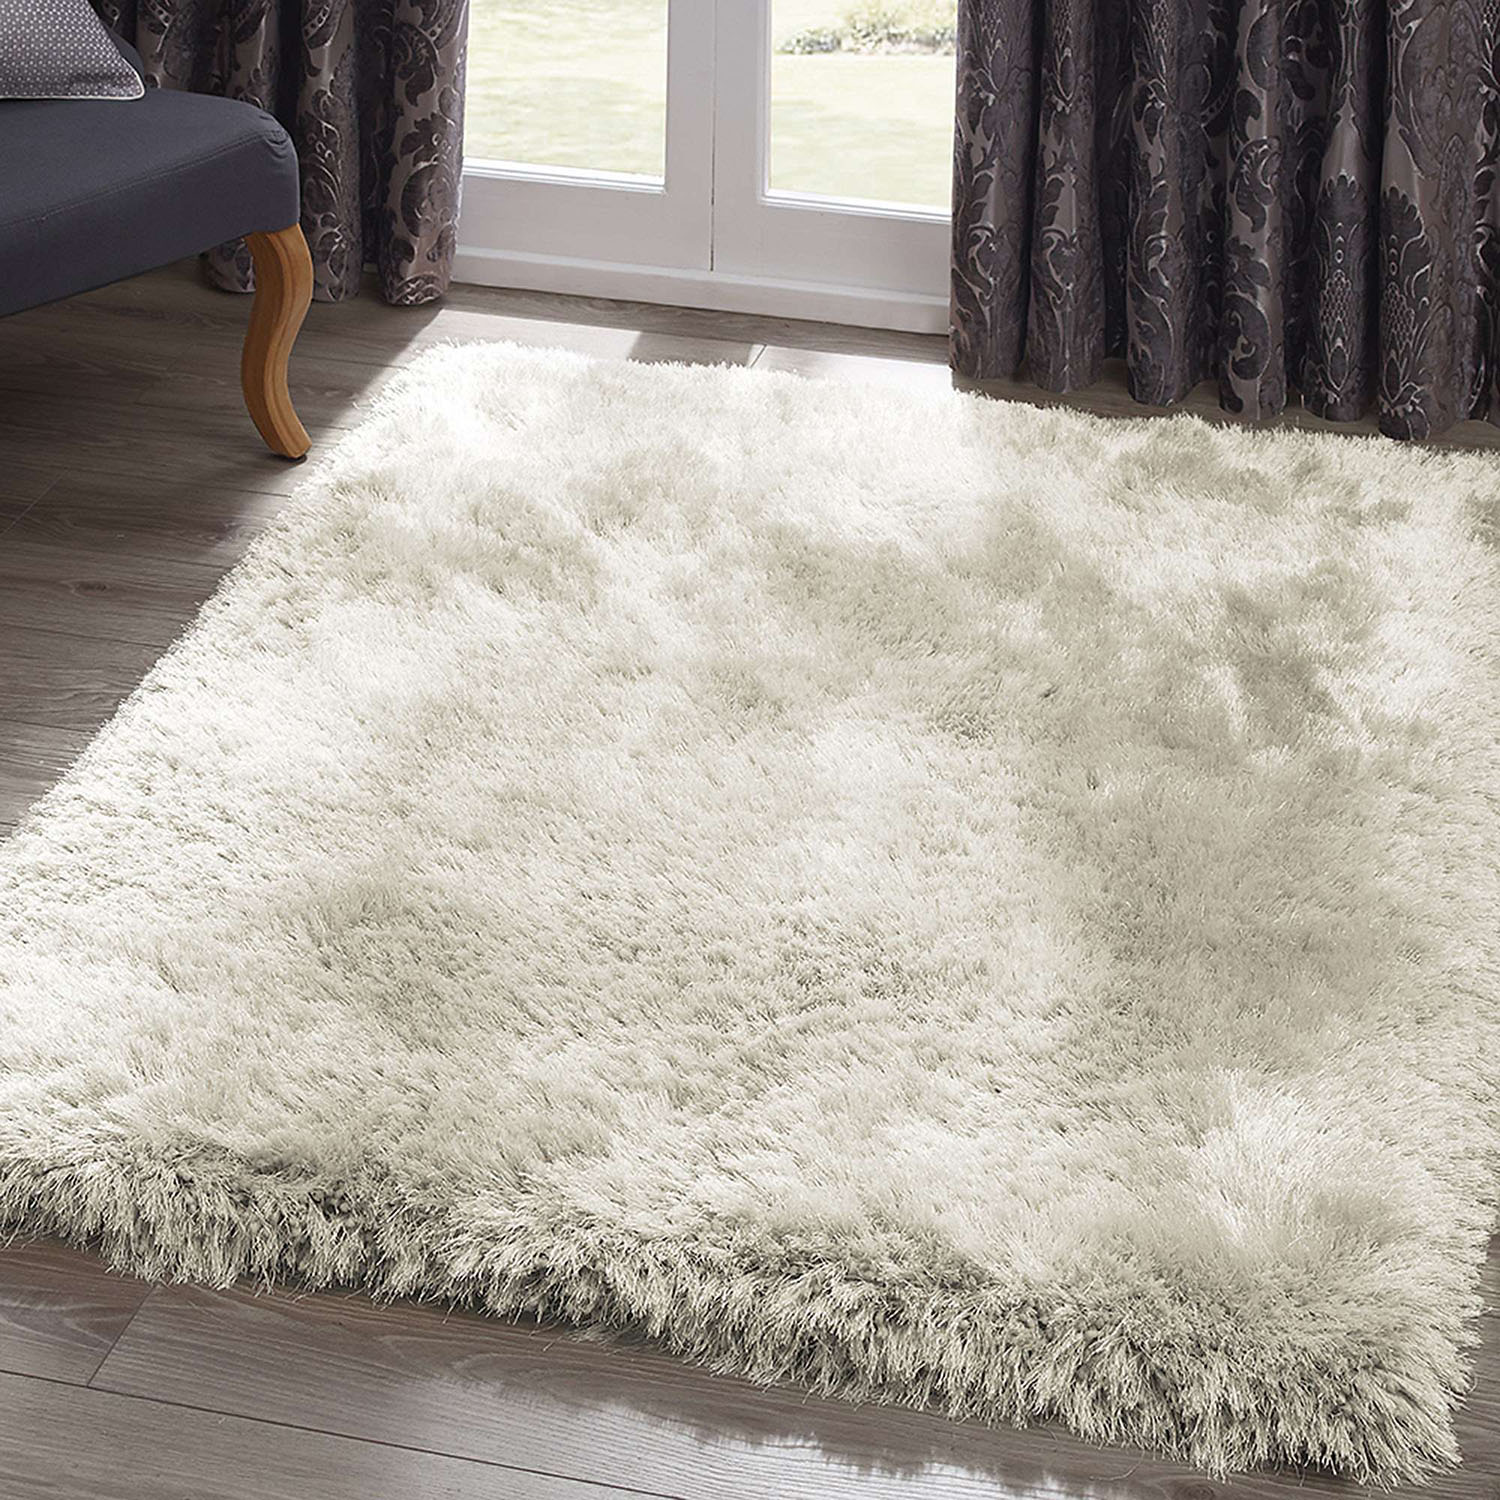 shaggy rugs send to a friend : jewel shaggy rug in ivory NIEQTTV